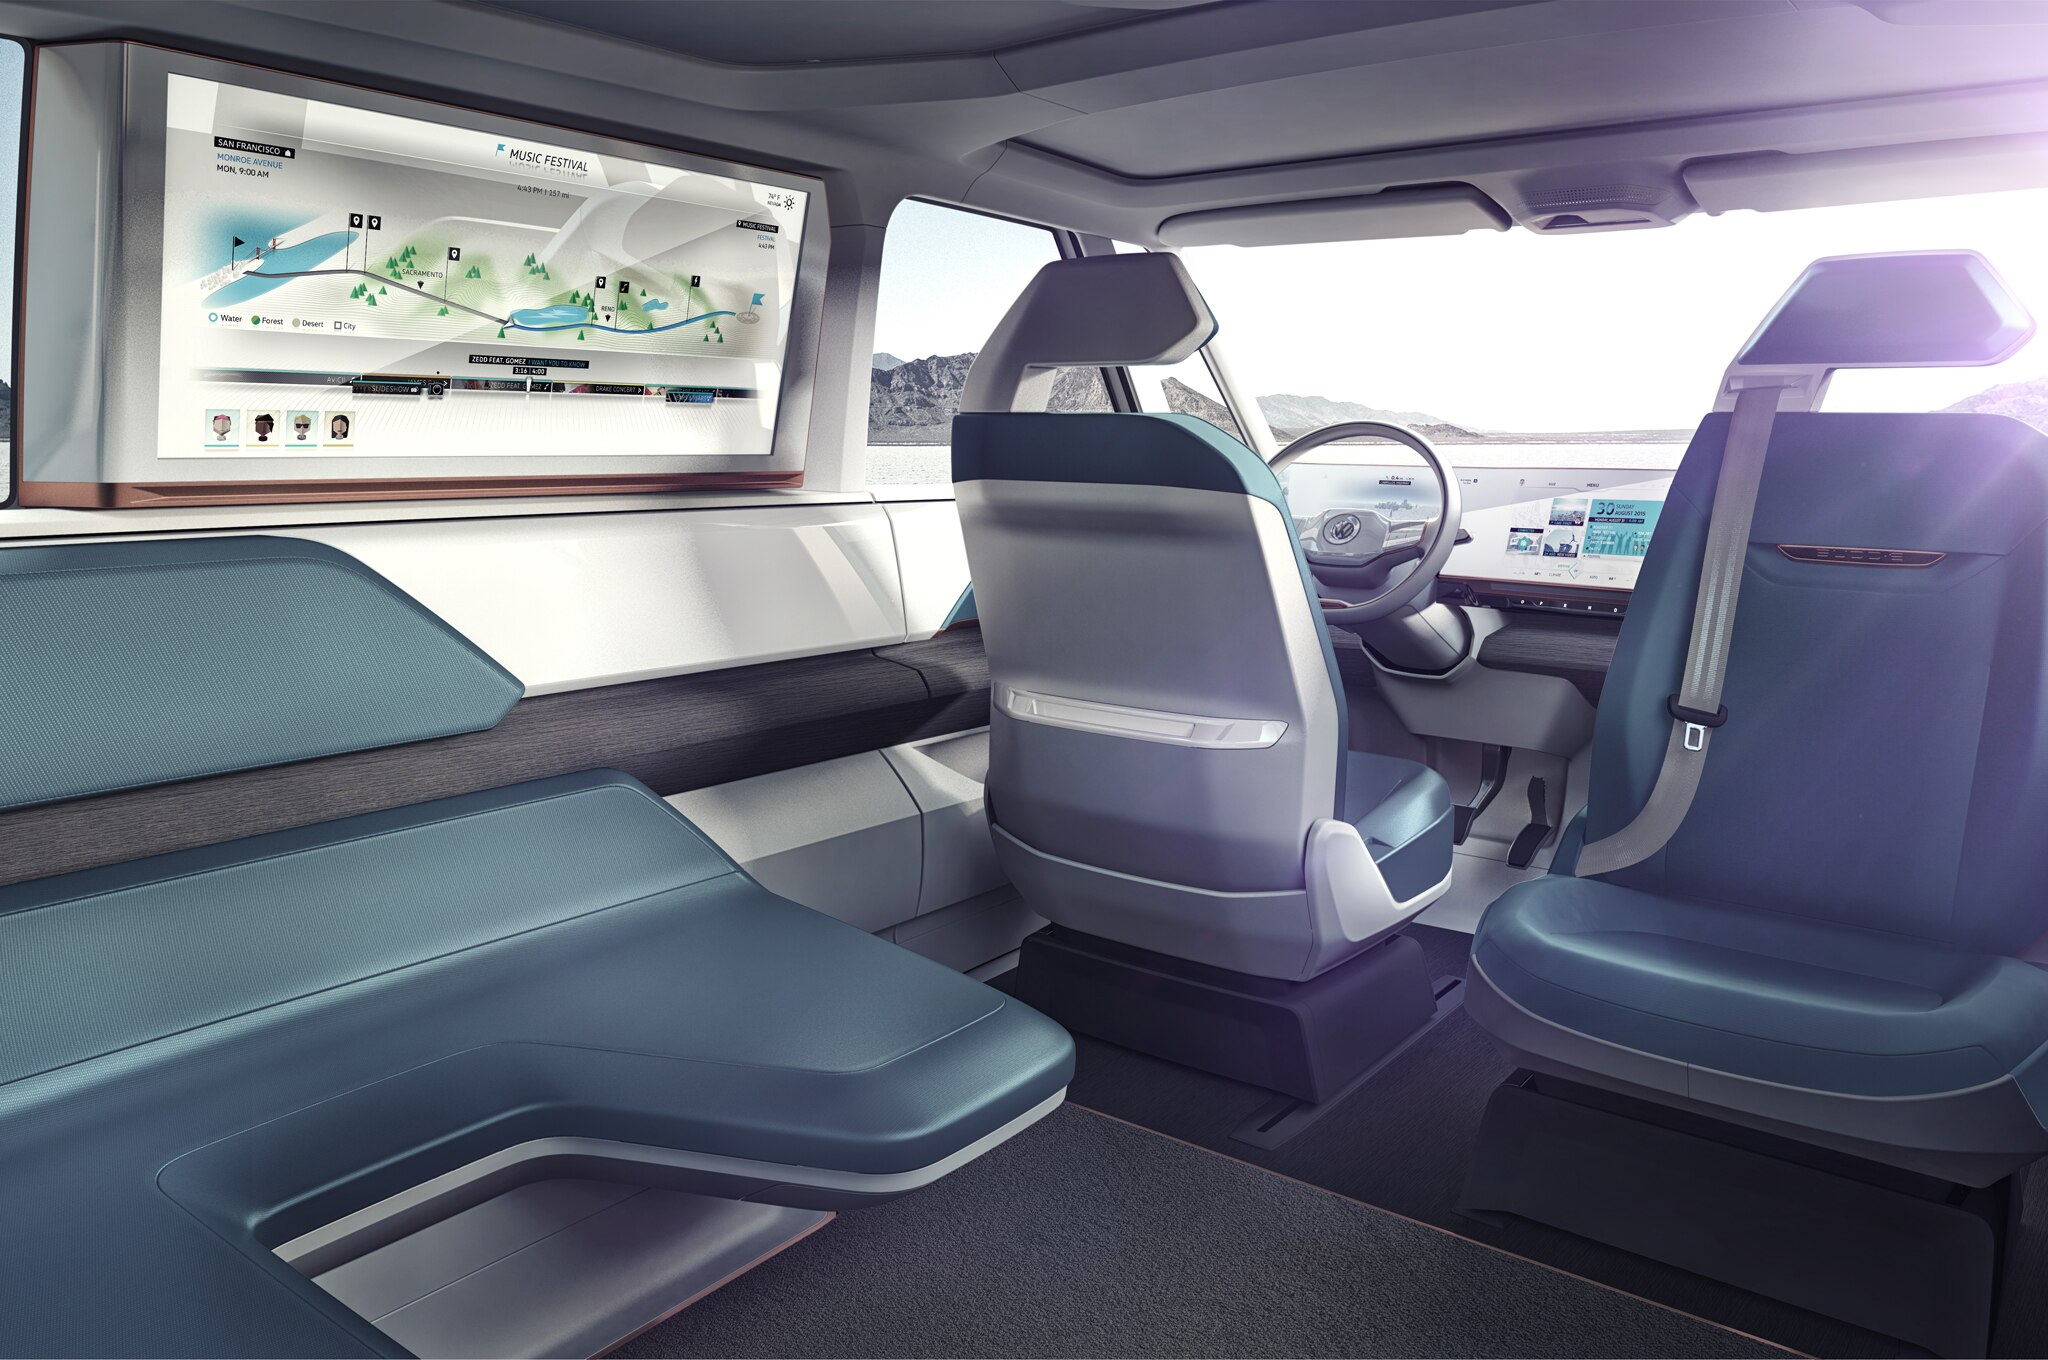 volkswagen budd e concept has 233 miles of range microbus like body. Black Bedroom Furniture Sets. Home Design Ideas